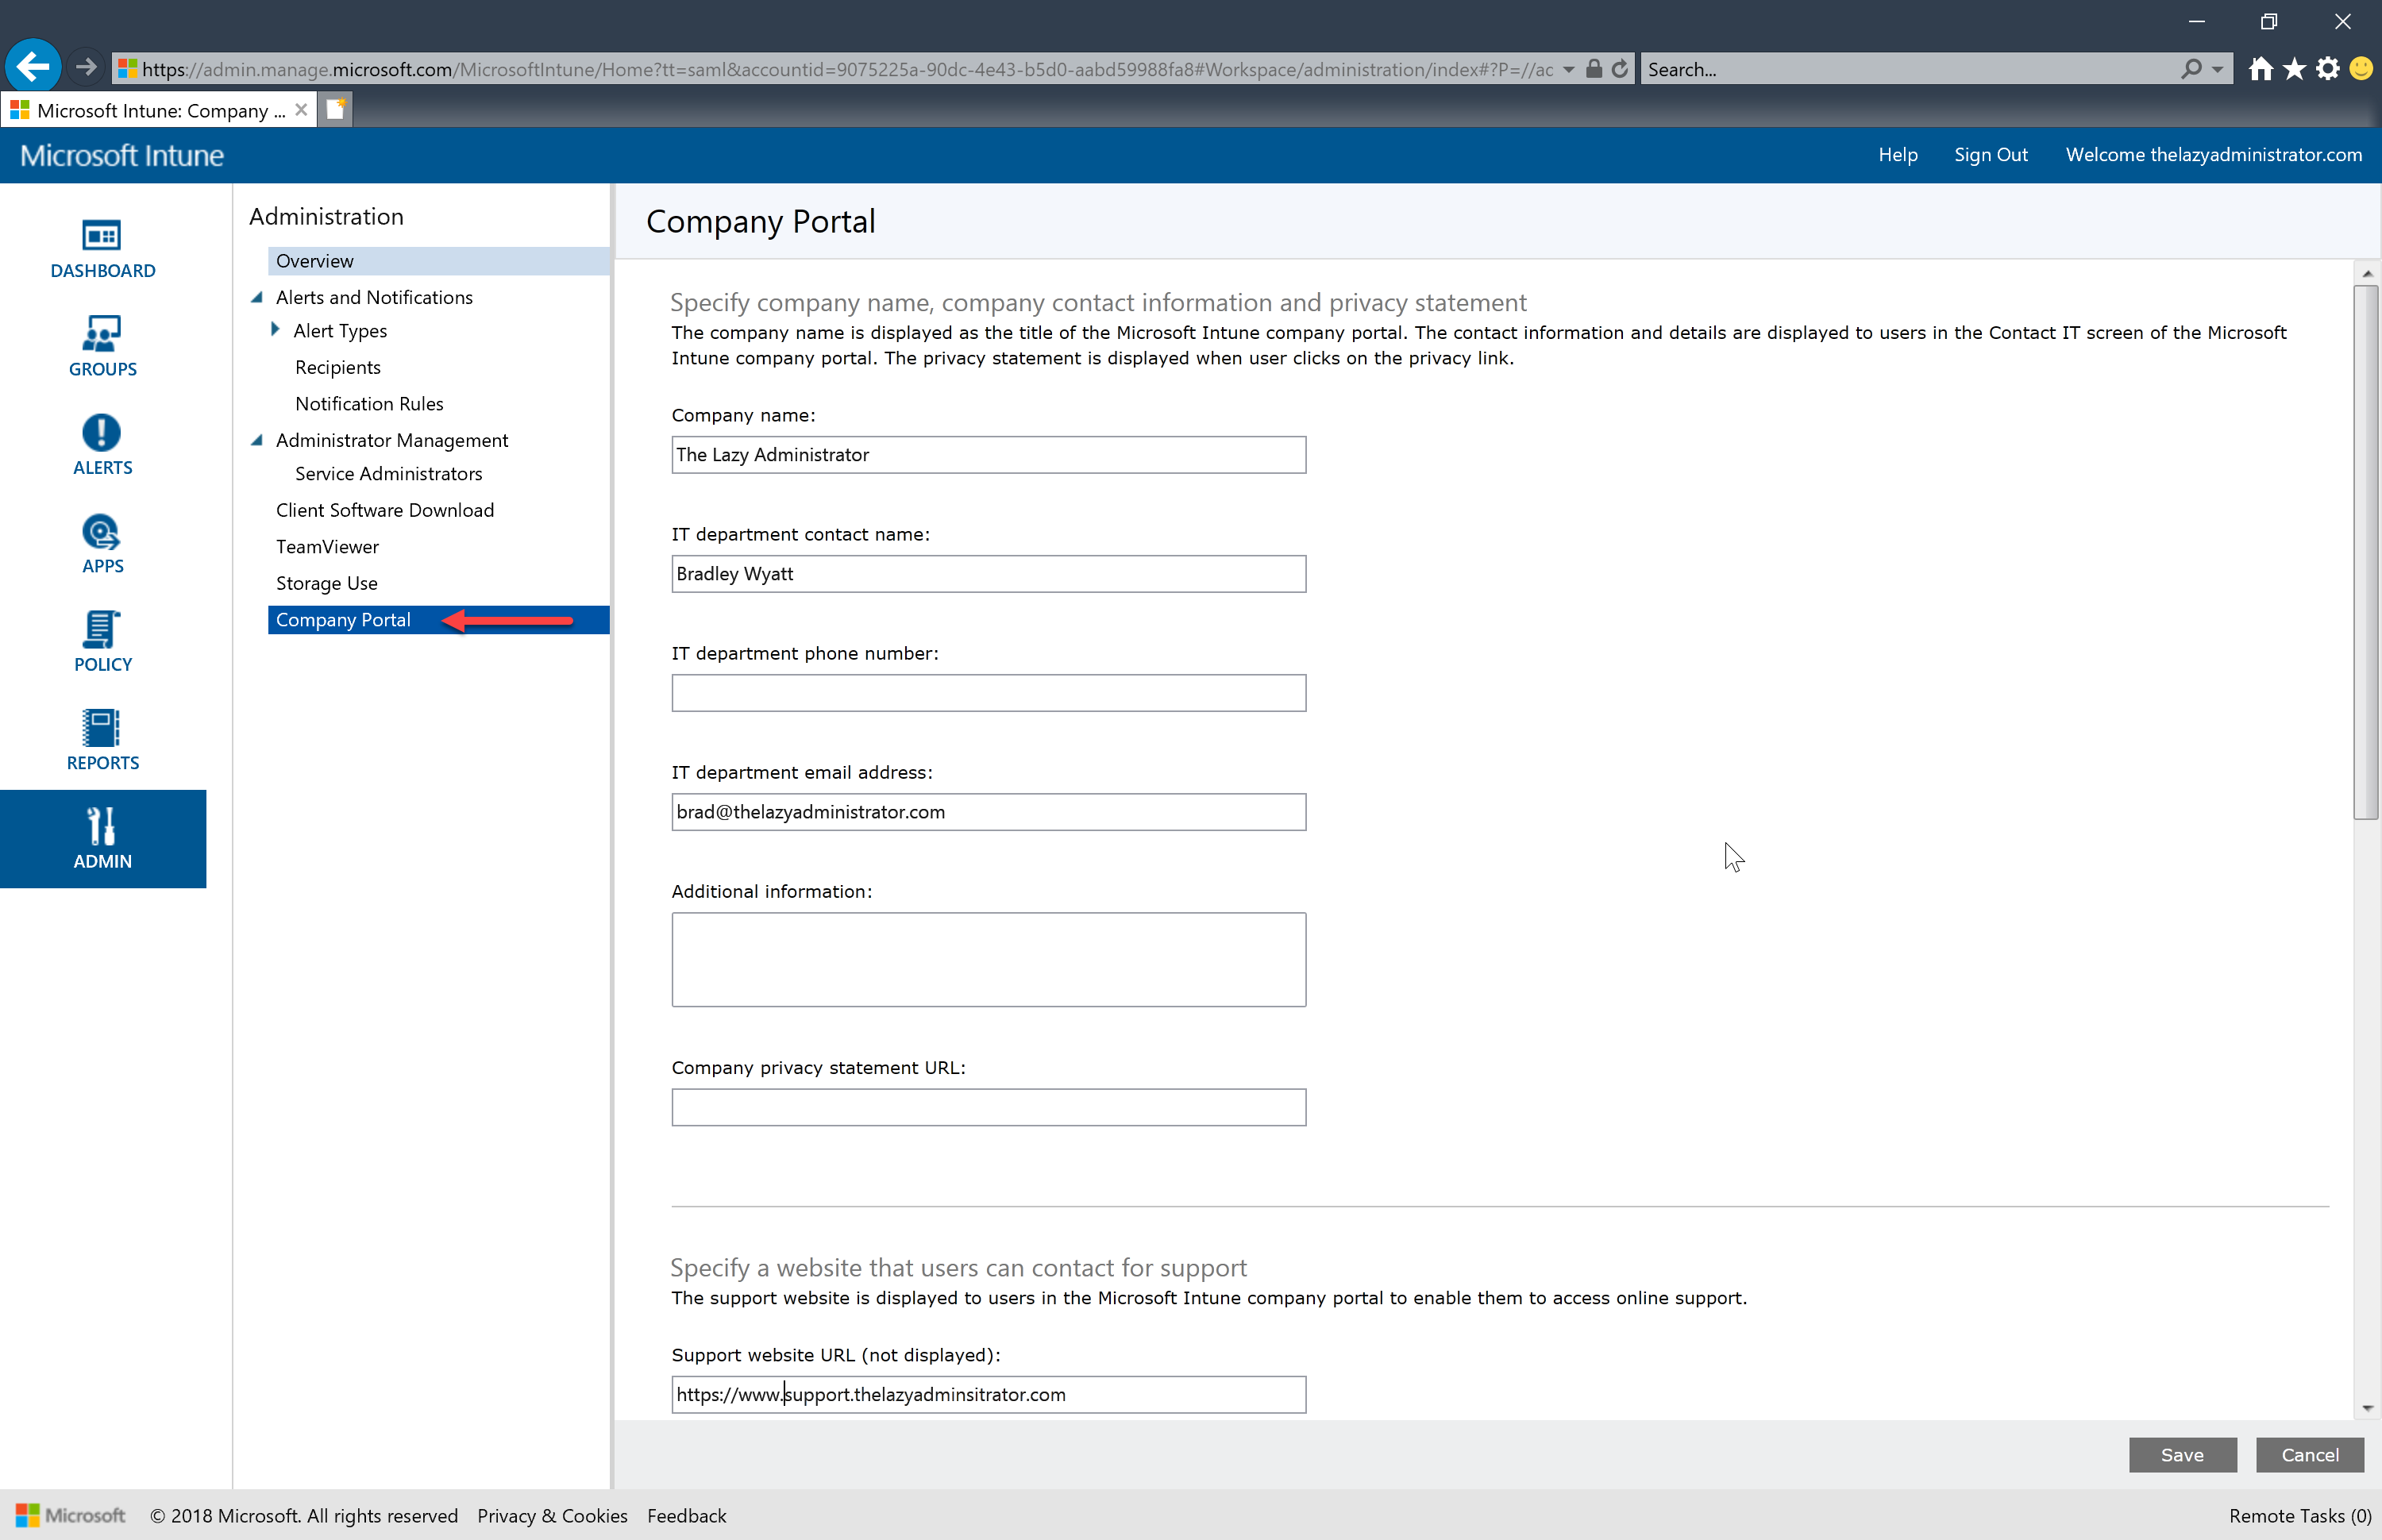 Configure and Deploy Intune MDM - The Lazy Administrator